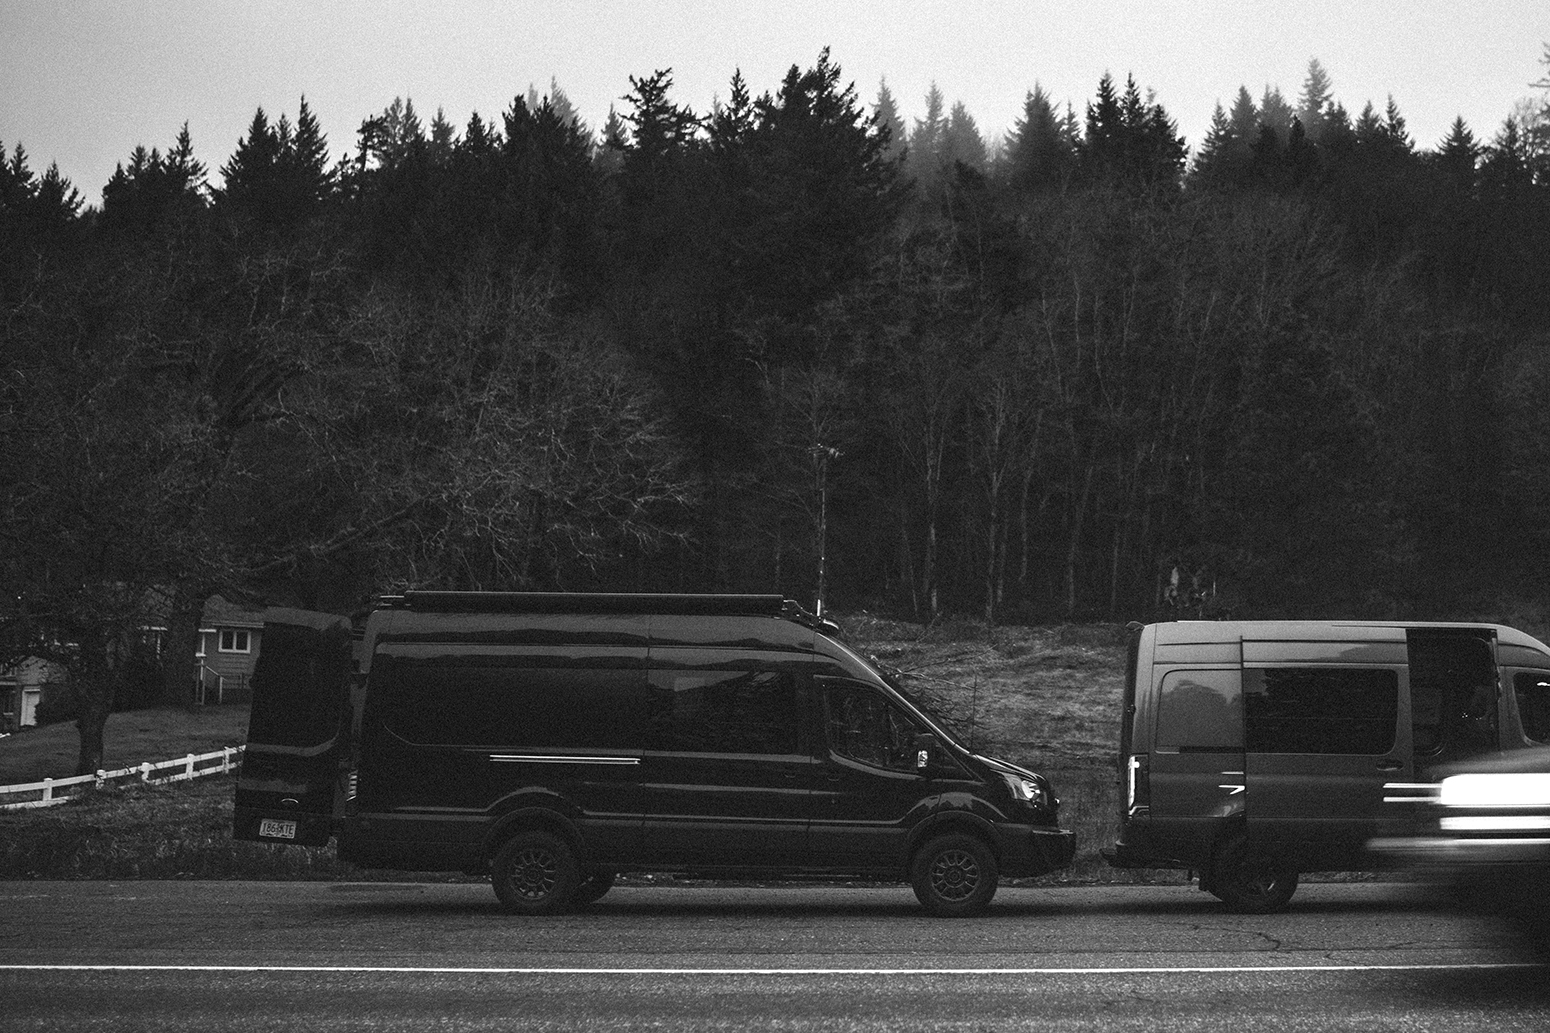 Twp sprinter vans on the side of the road